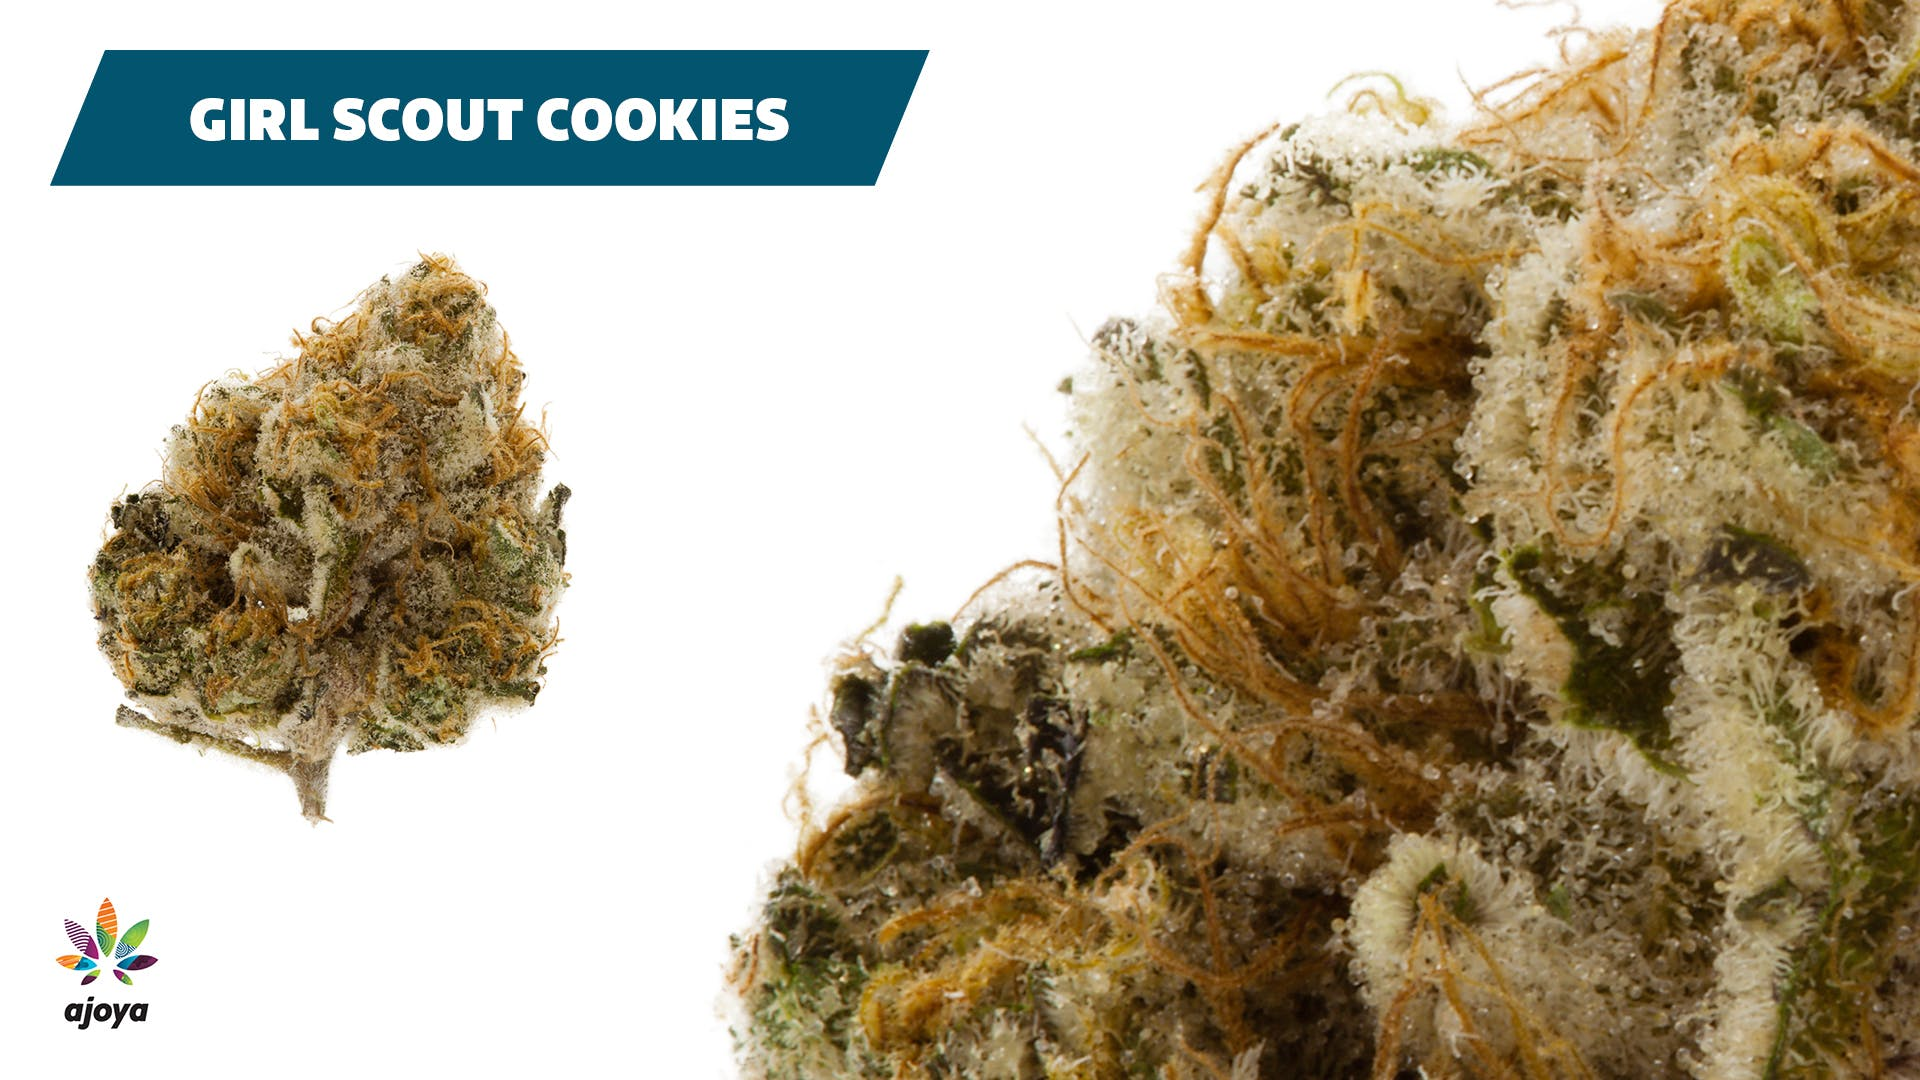 indica-ajoya-girl-scout-cookies-22-25-thc